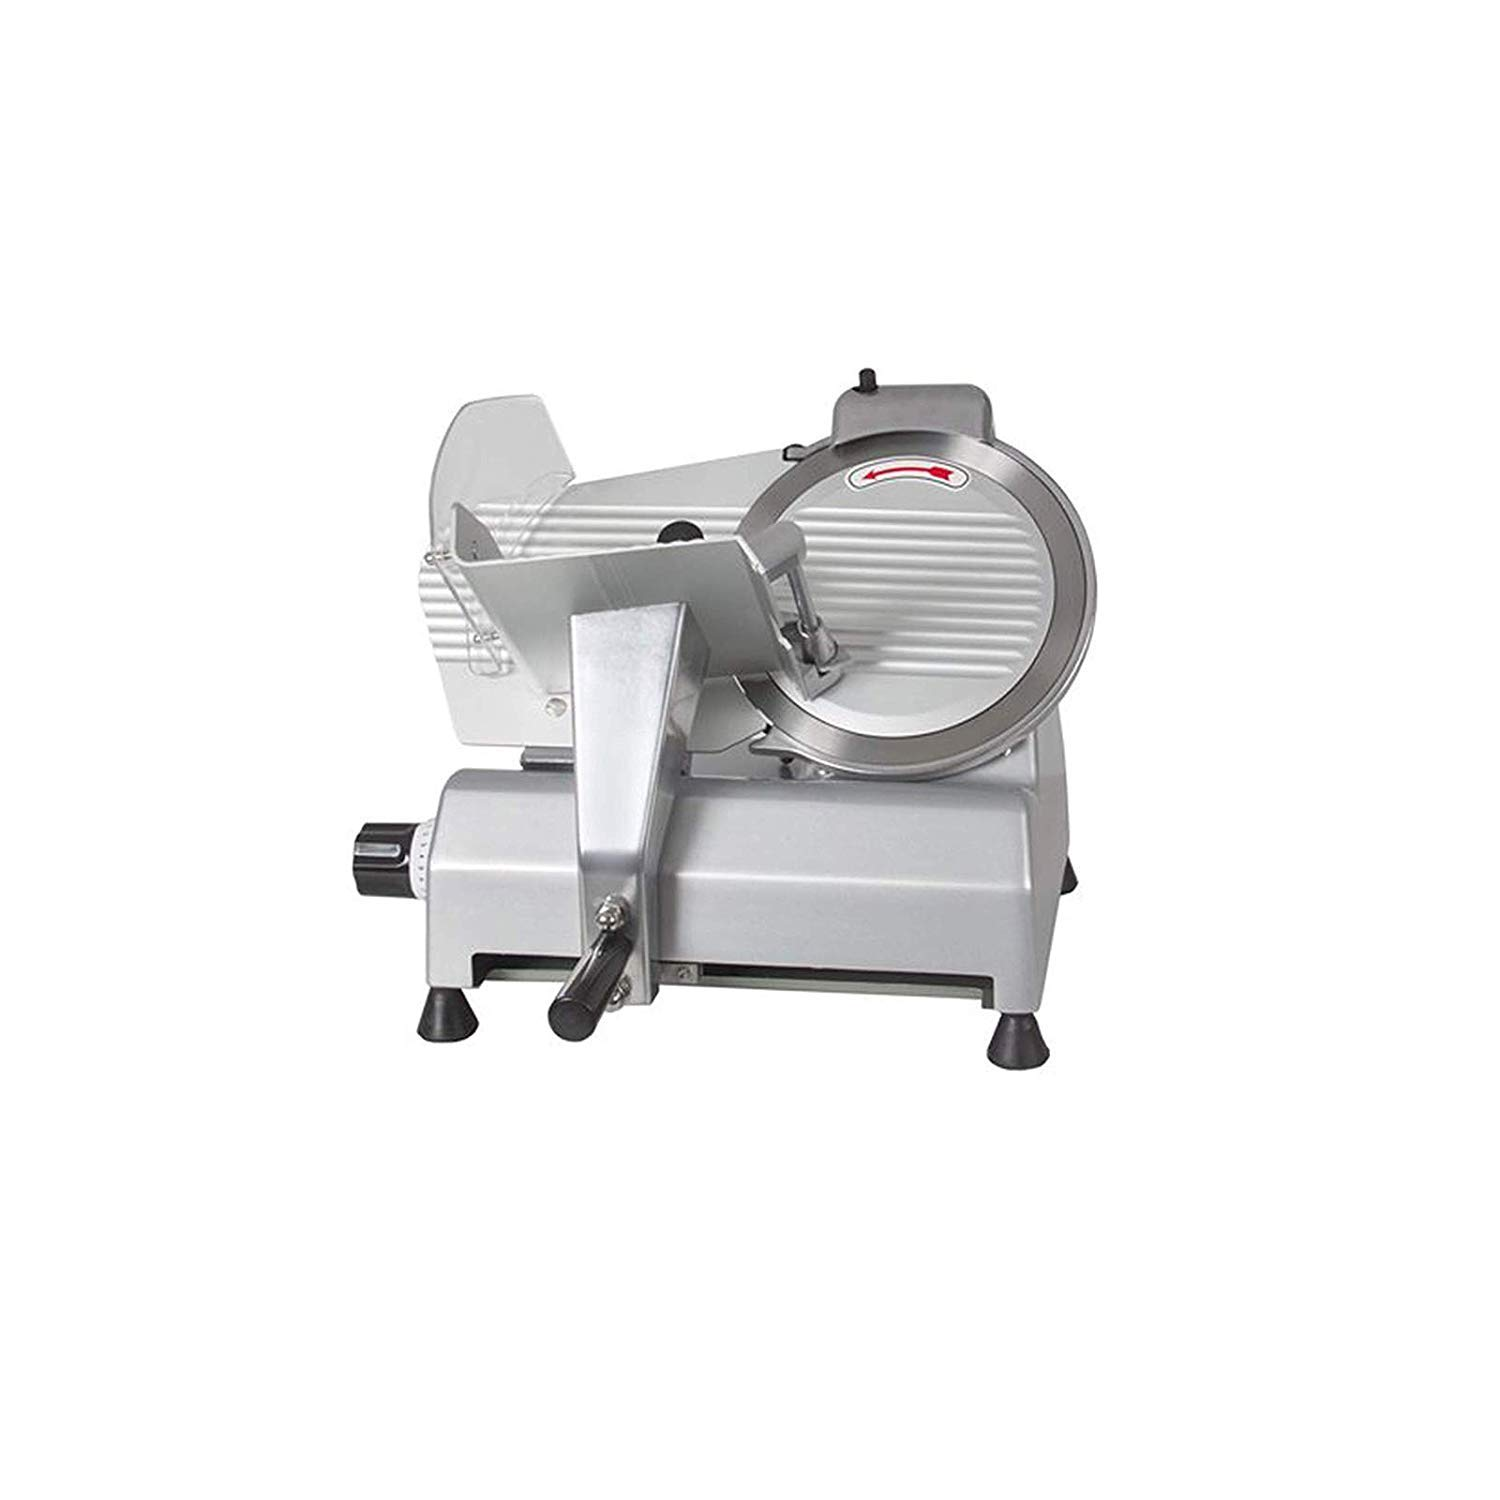 Commercial deli home meat slicer